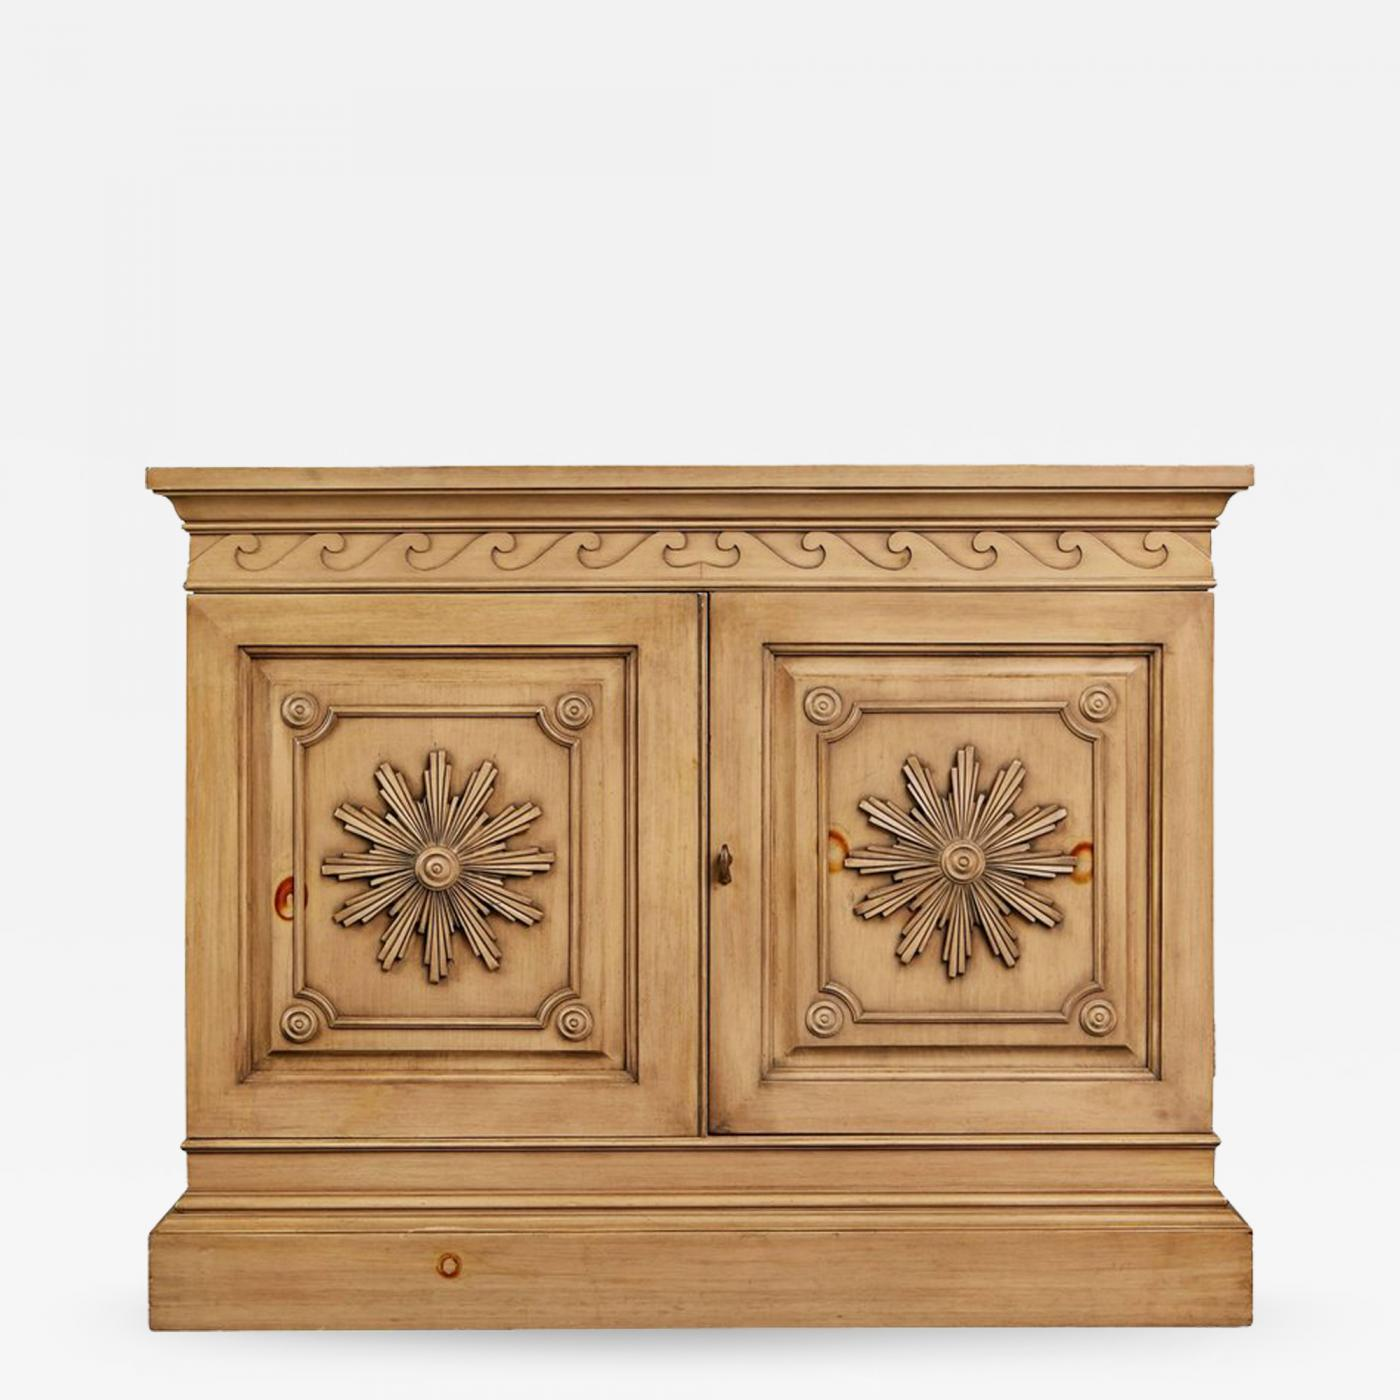 Edward wormley carved oak bar cabinet for dunbar circa 1960